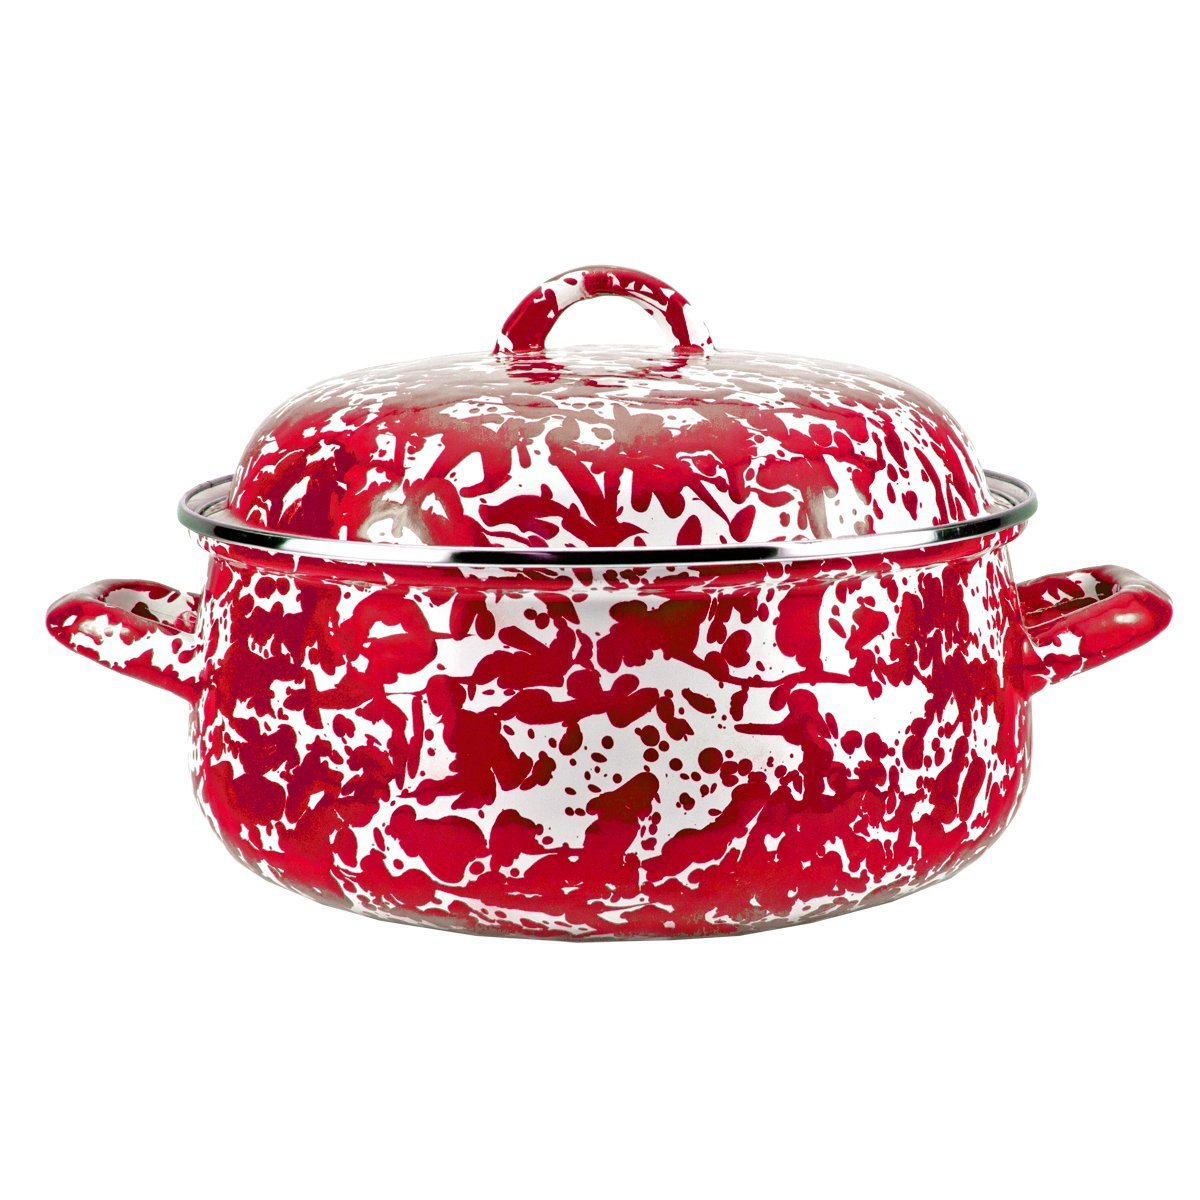 Enamelware -Red Swirl Pattern - 4 Quart Dutch Oven